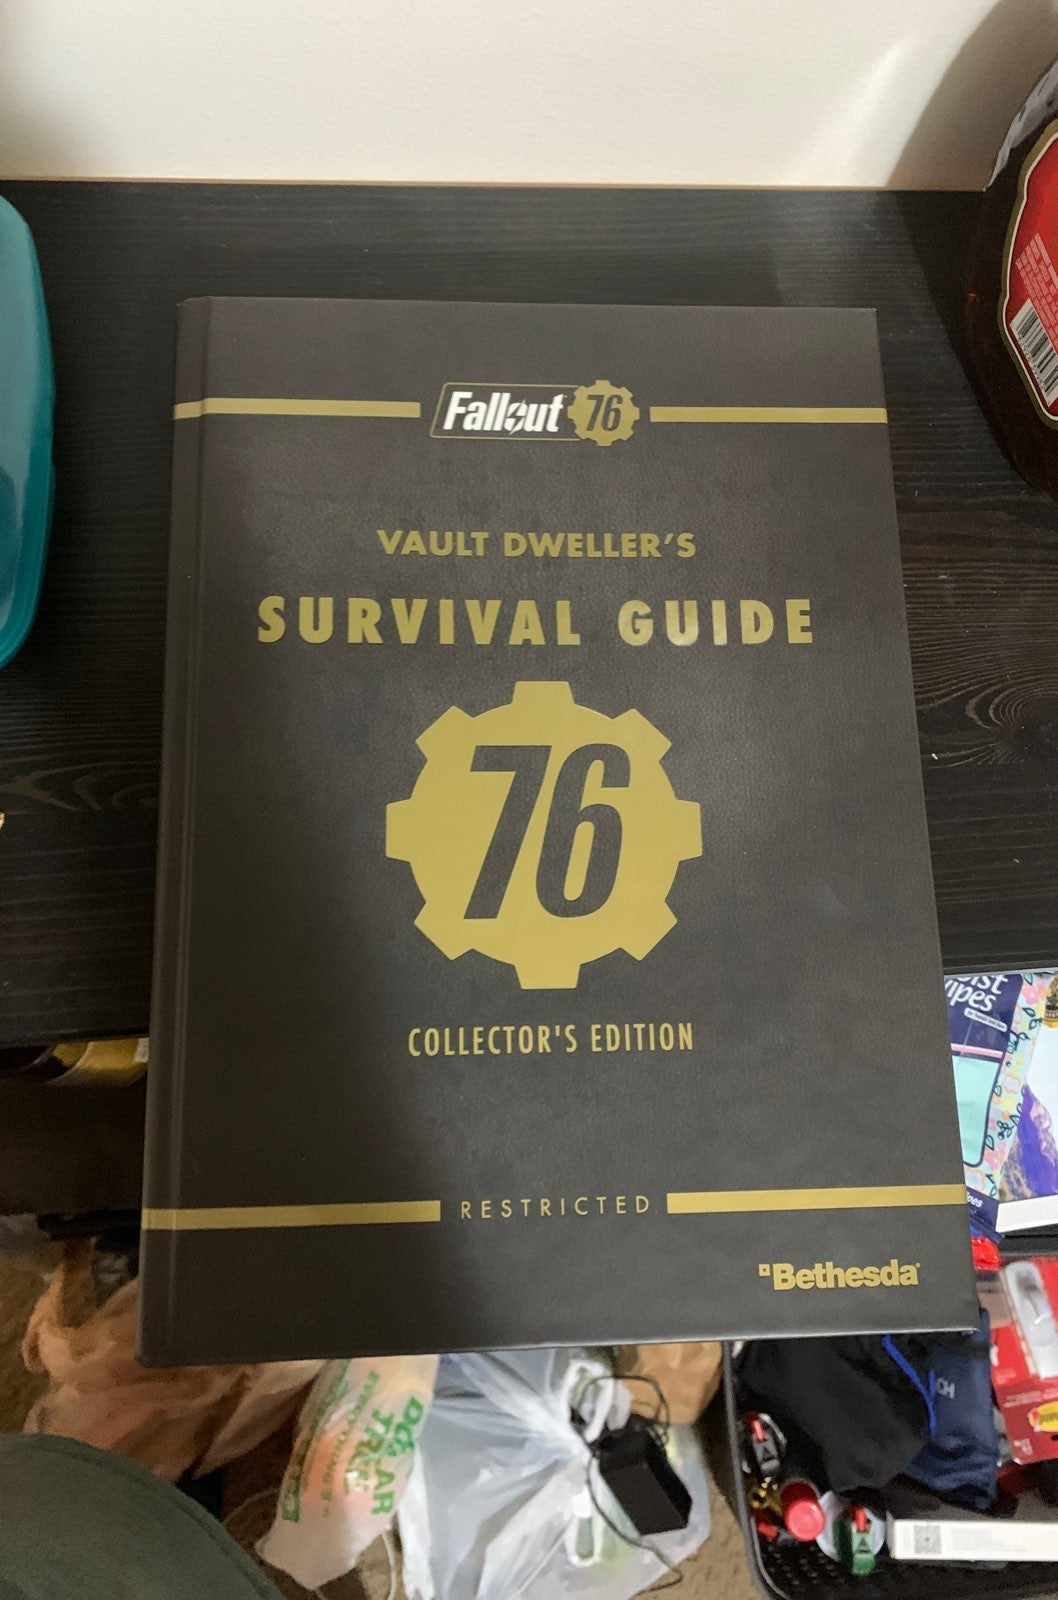 Fallout 76 Collecters edition Survival G